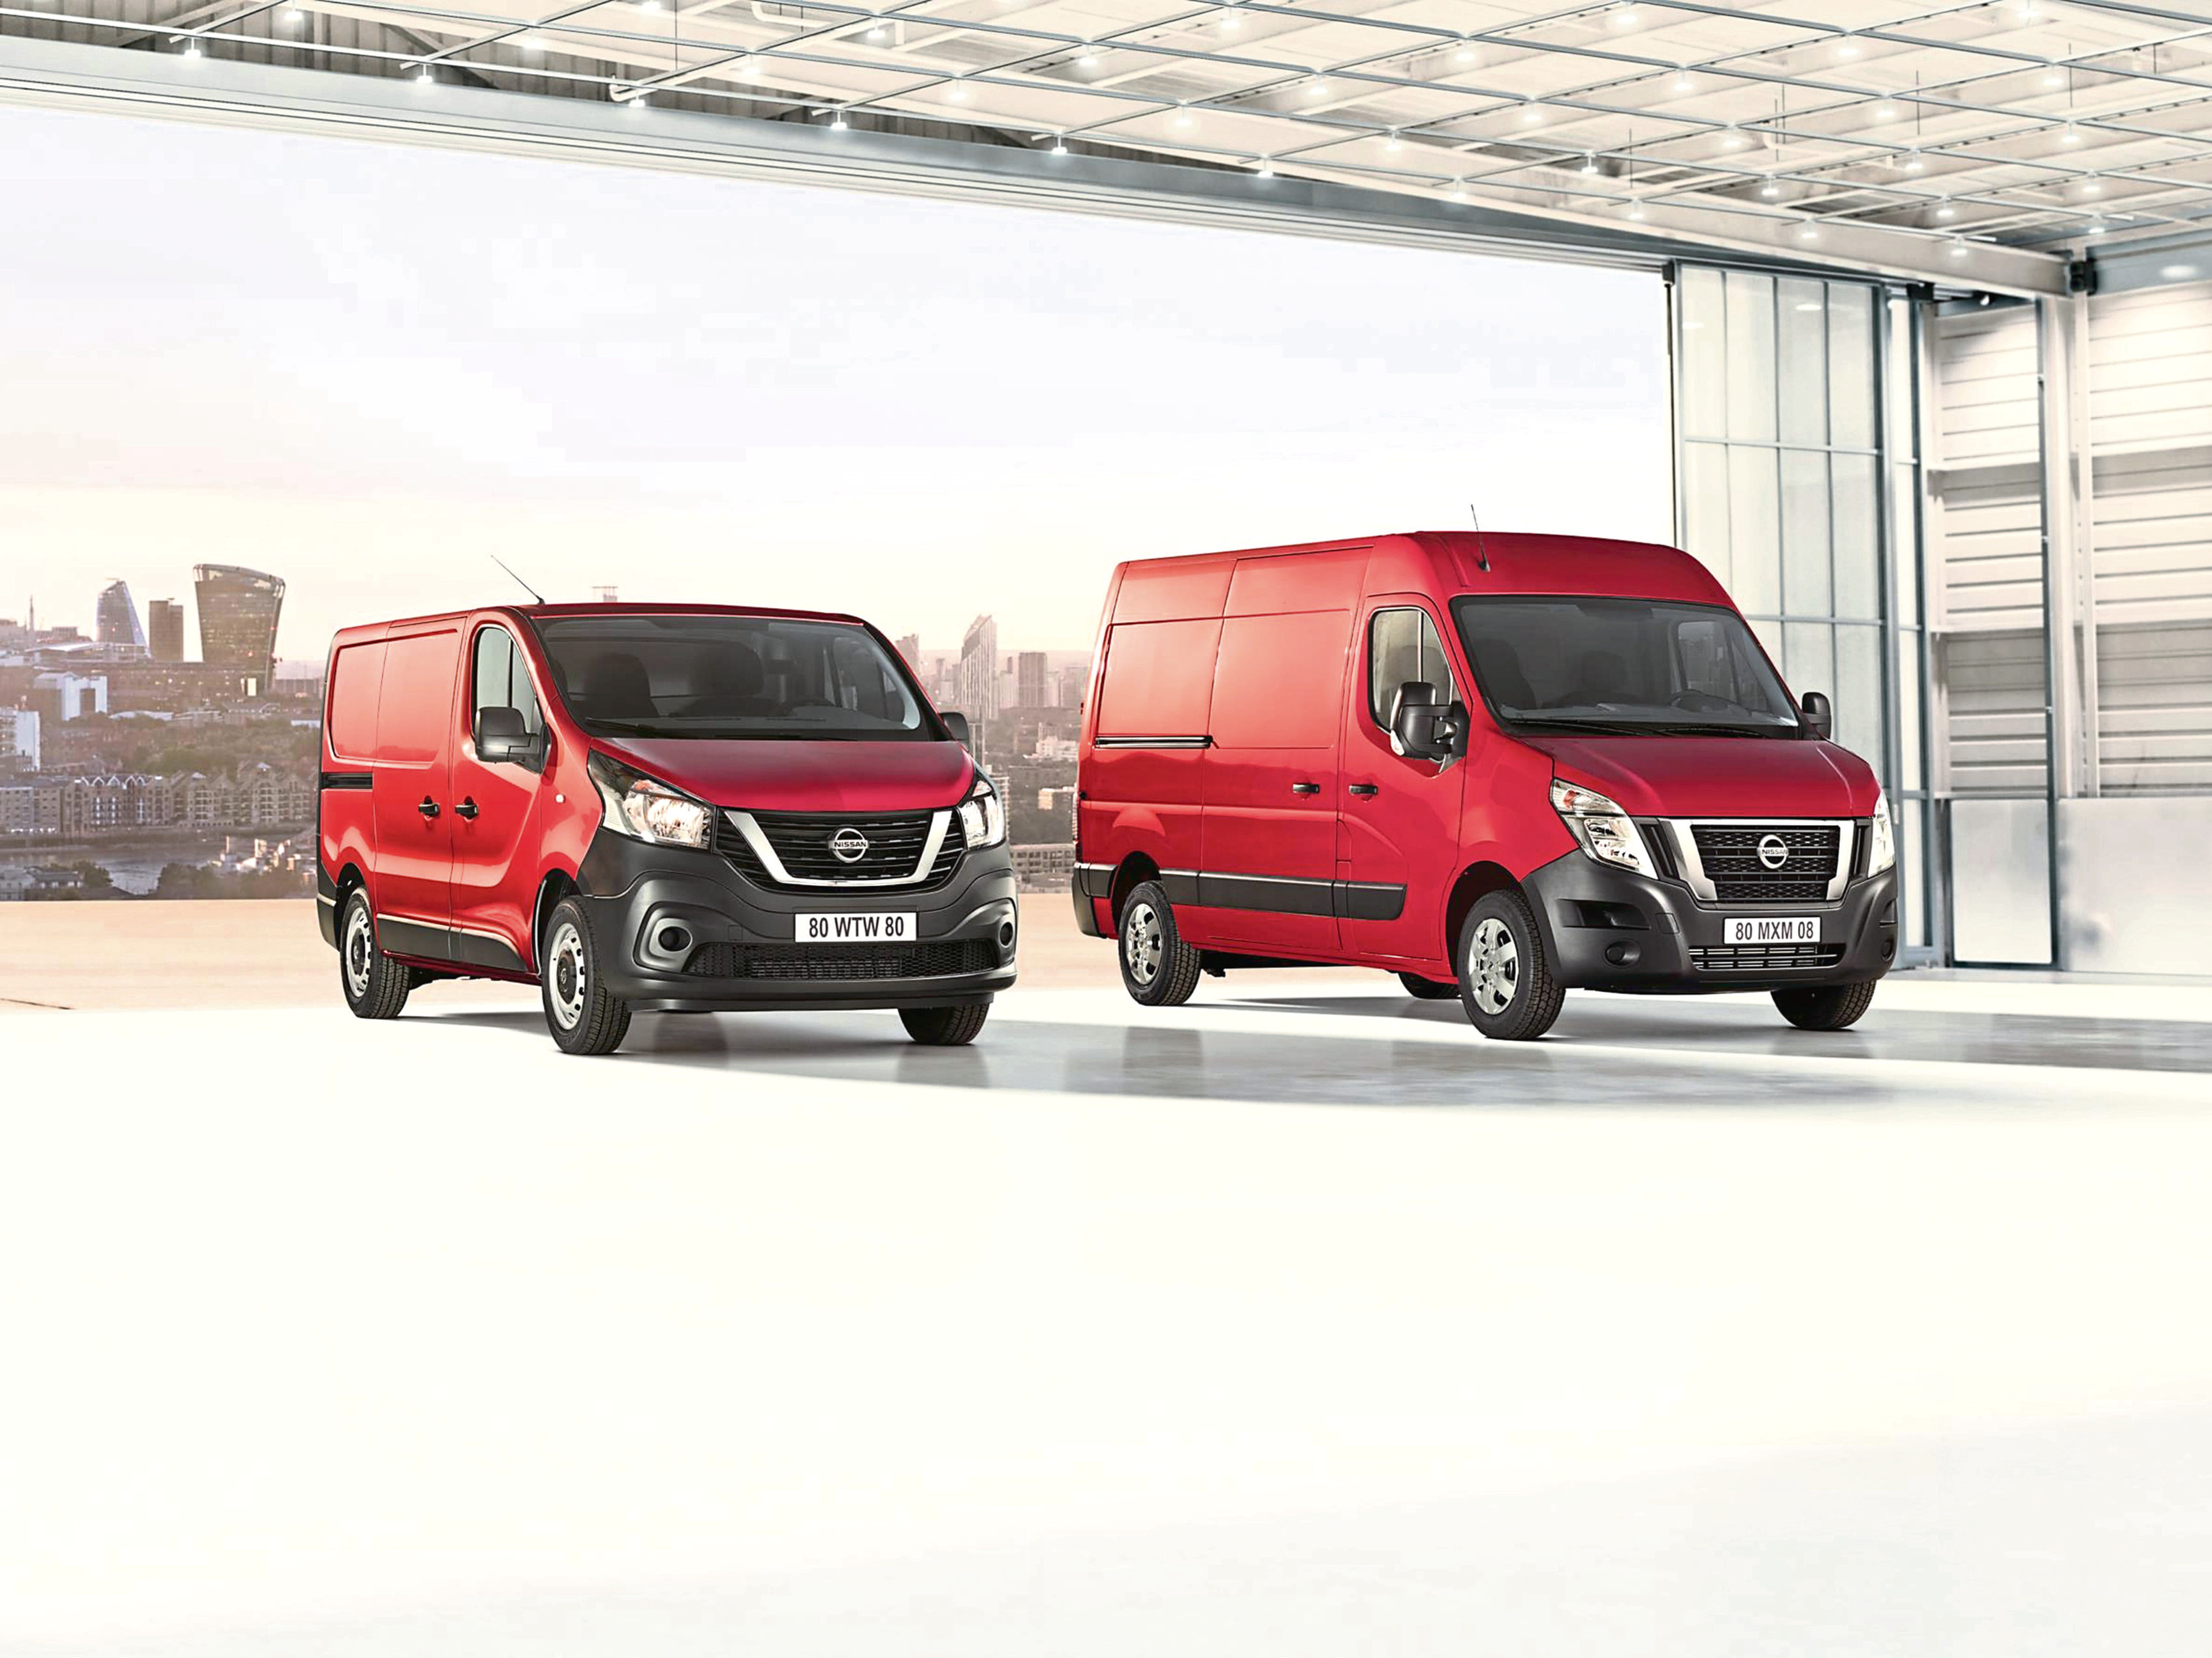 Undated Handout Photo of new upgraded NV300 and NV400 Nissan vans. See PA Feature MOTORING News. Picture credit should read: Nissan/PA. WARNING: This picture must only be used to accompany PA Feature MOTORING News.